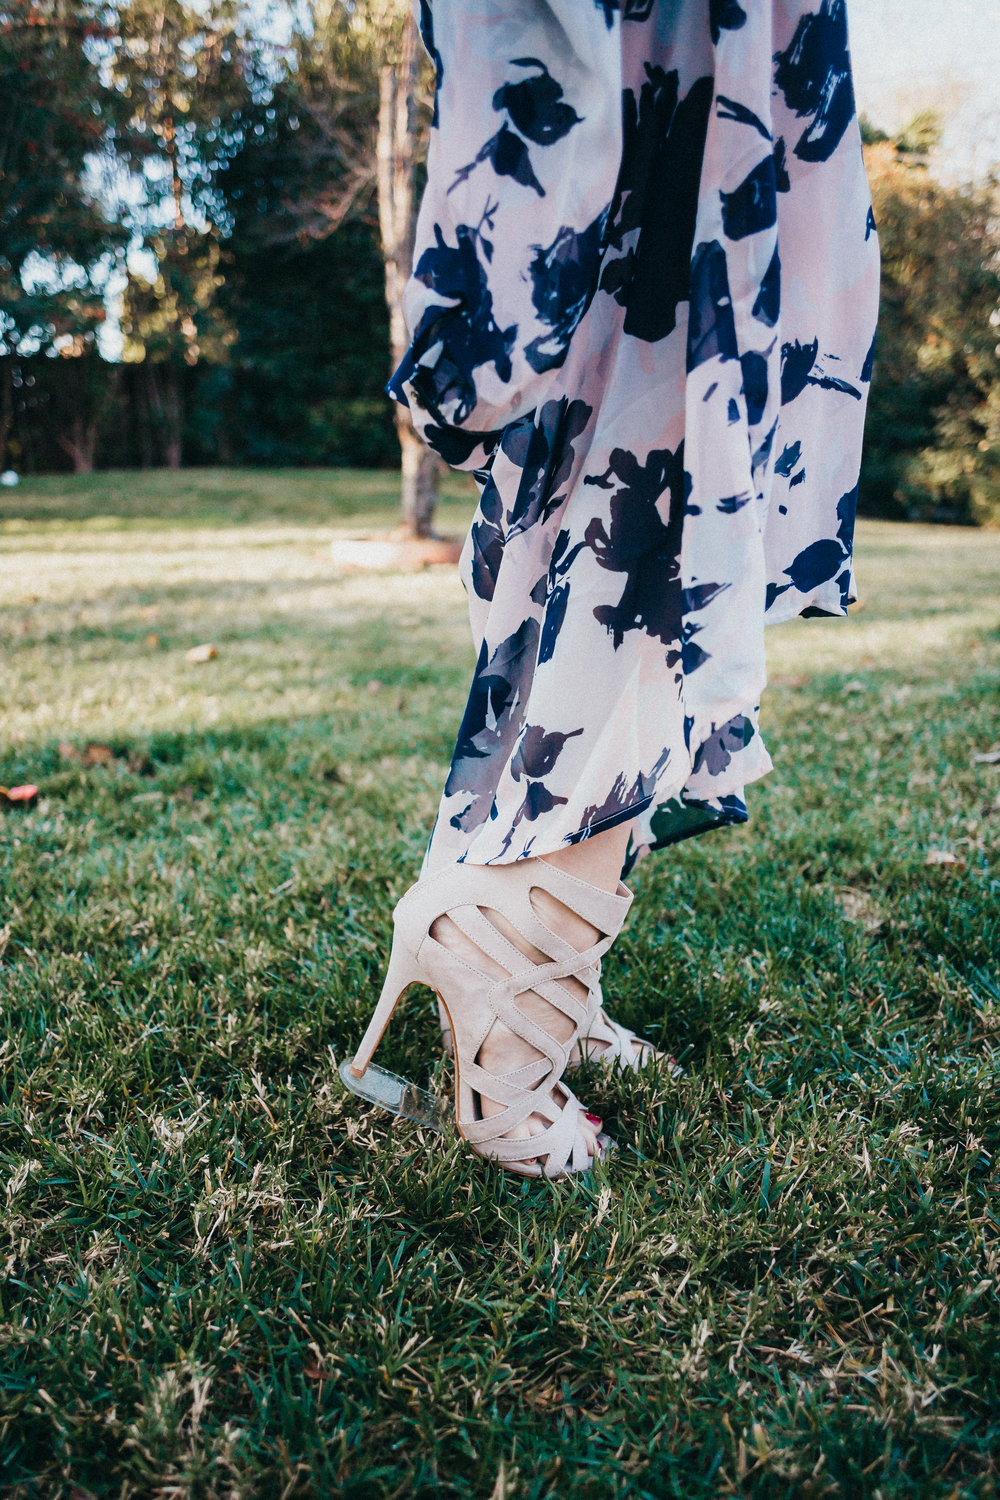 Stiletto Heel Grass Protectors - Make it Easier to Walk in Grass with Heels - Grasswalkers -- Wedding Blog - The Overwhelmed Bride